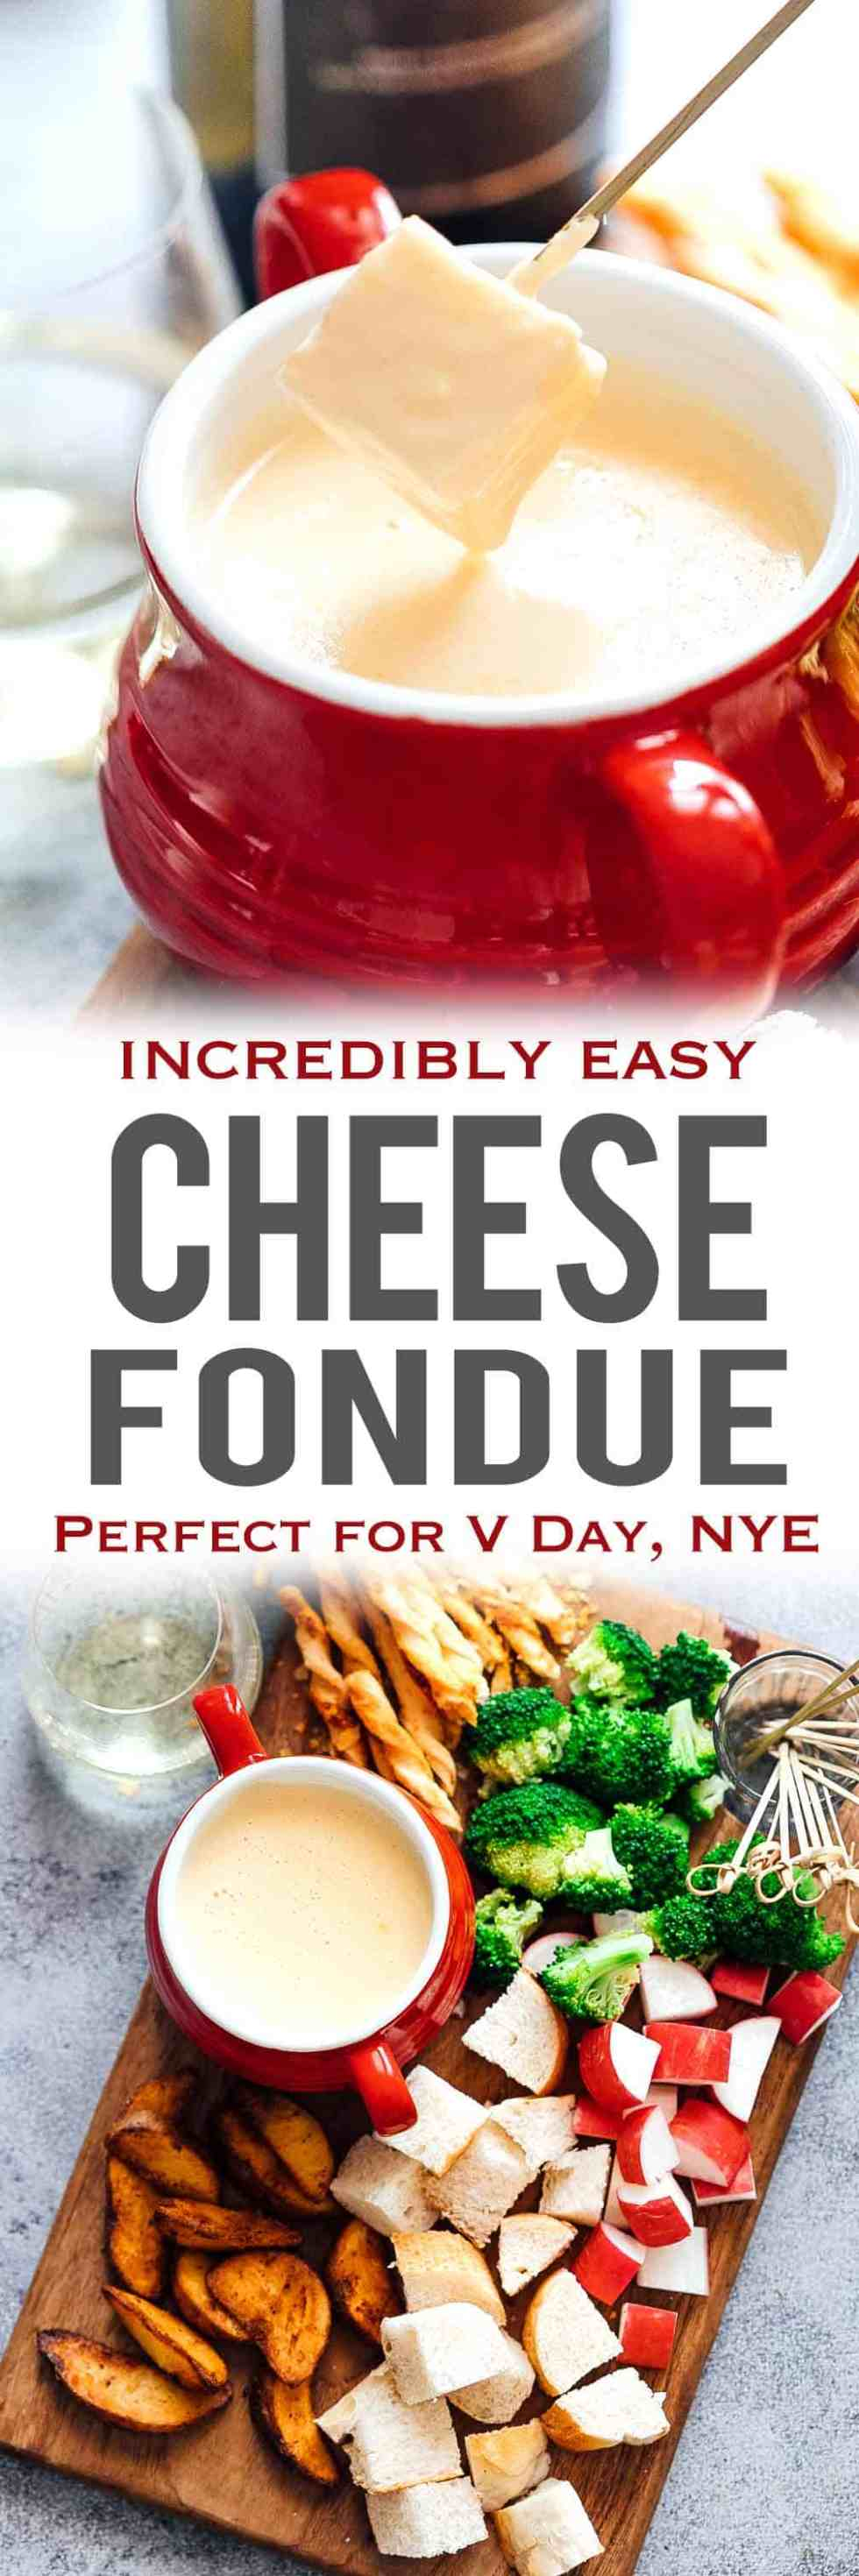 Easy cheese fondue recipe with white wine is a perfect gourmet appetizer that you can make at home! Cheeses like emmental, gruyere and cheddar work best for a silky, creamy, indulgent swiss fondue. Serve it up in a fondue pot with dippers like bread, broccoli, beef steak bites, potatoes etc. Amazing for New Years Eve, Valentines Day or a date night!